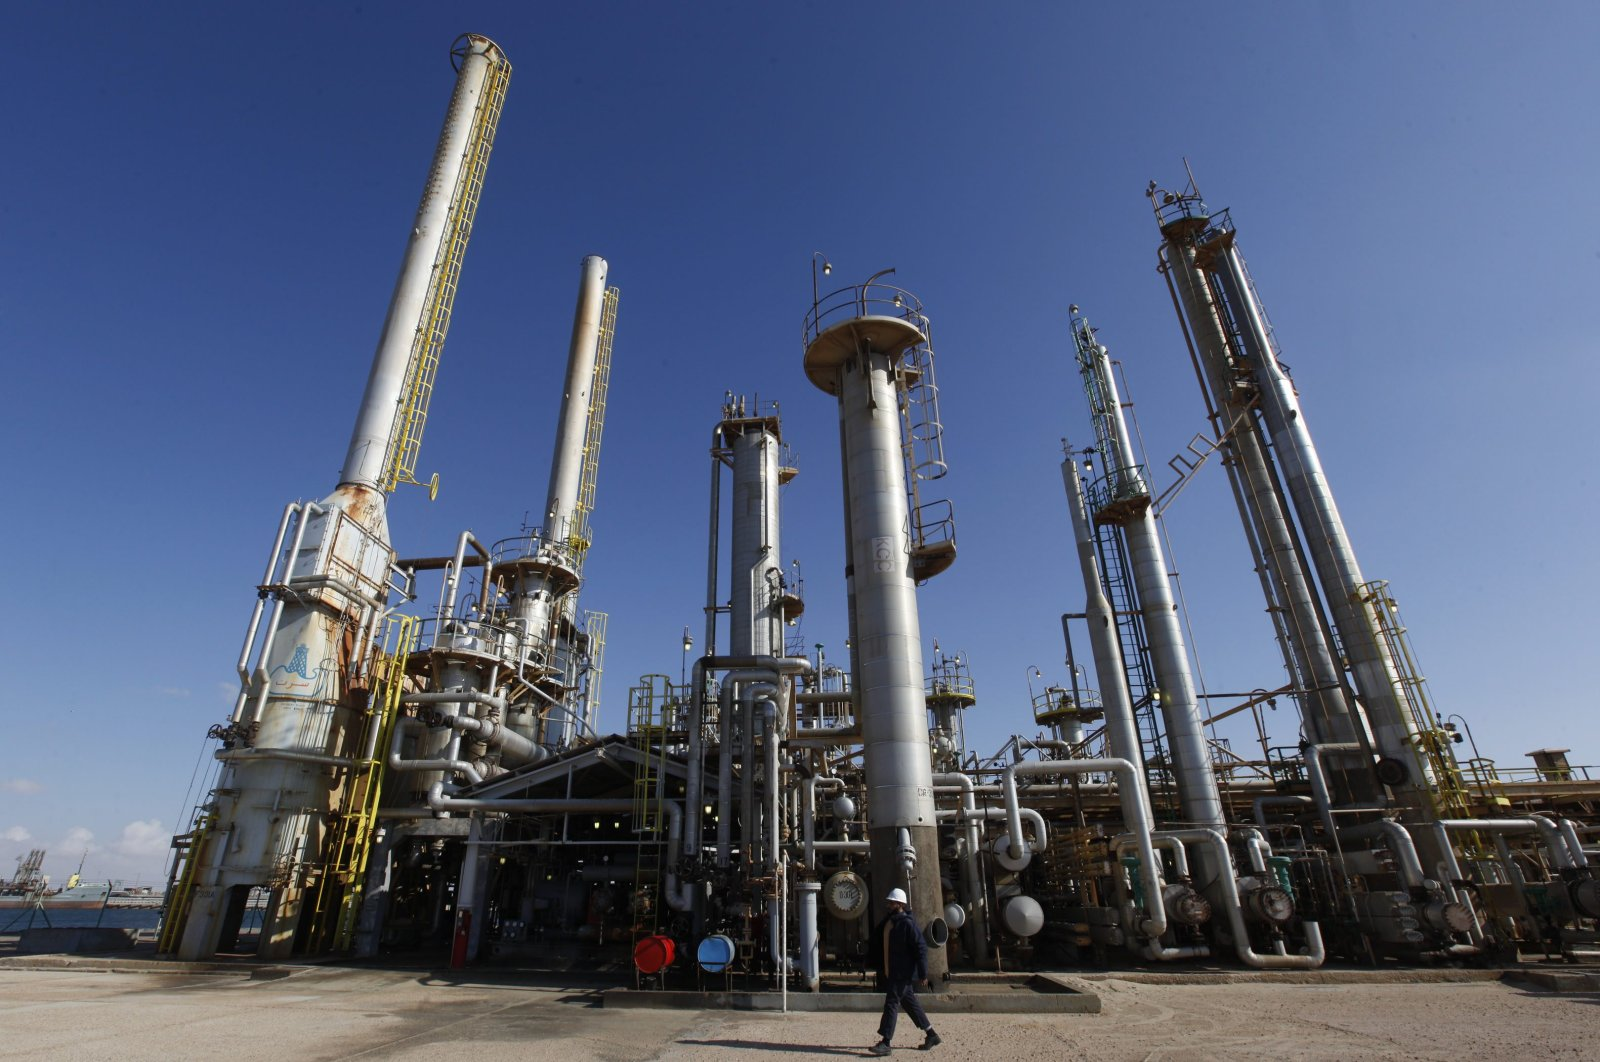 A Libyan oil worker walks in front of a refinery inside the Brega oil complex, in Brega east of Libya, on Saturday, Feb. 26, 2011. (AP Photo)